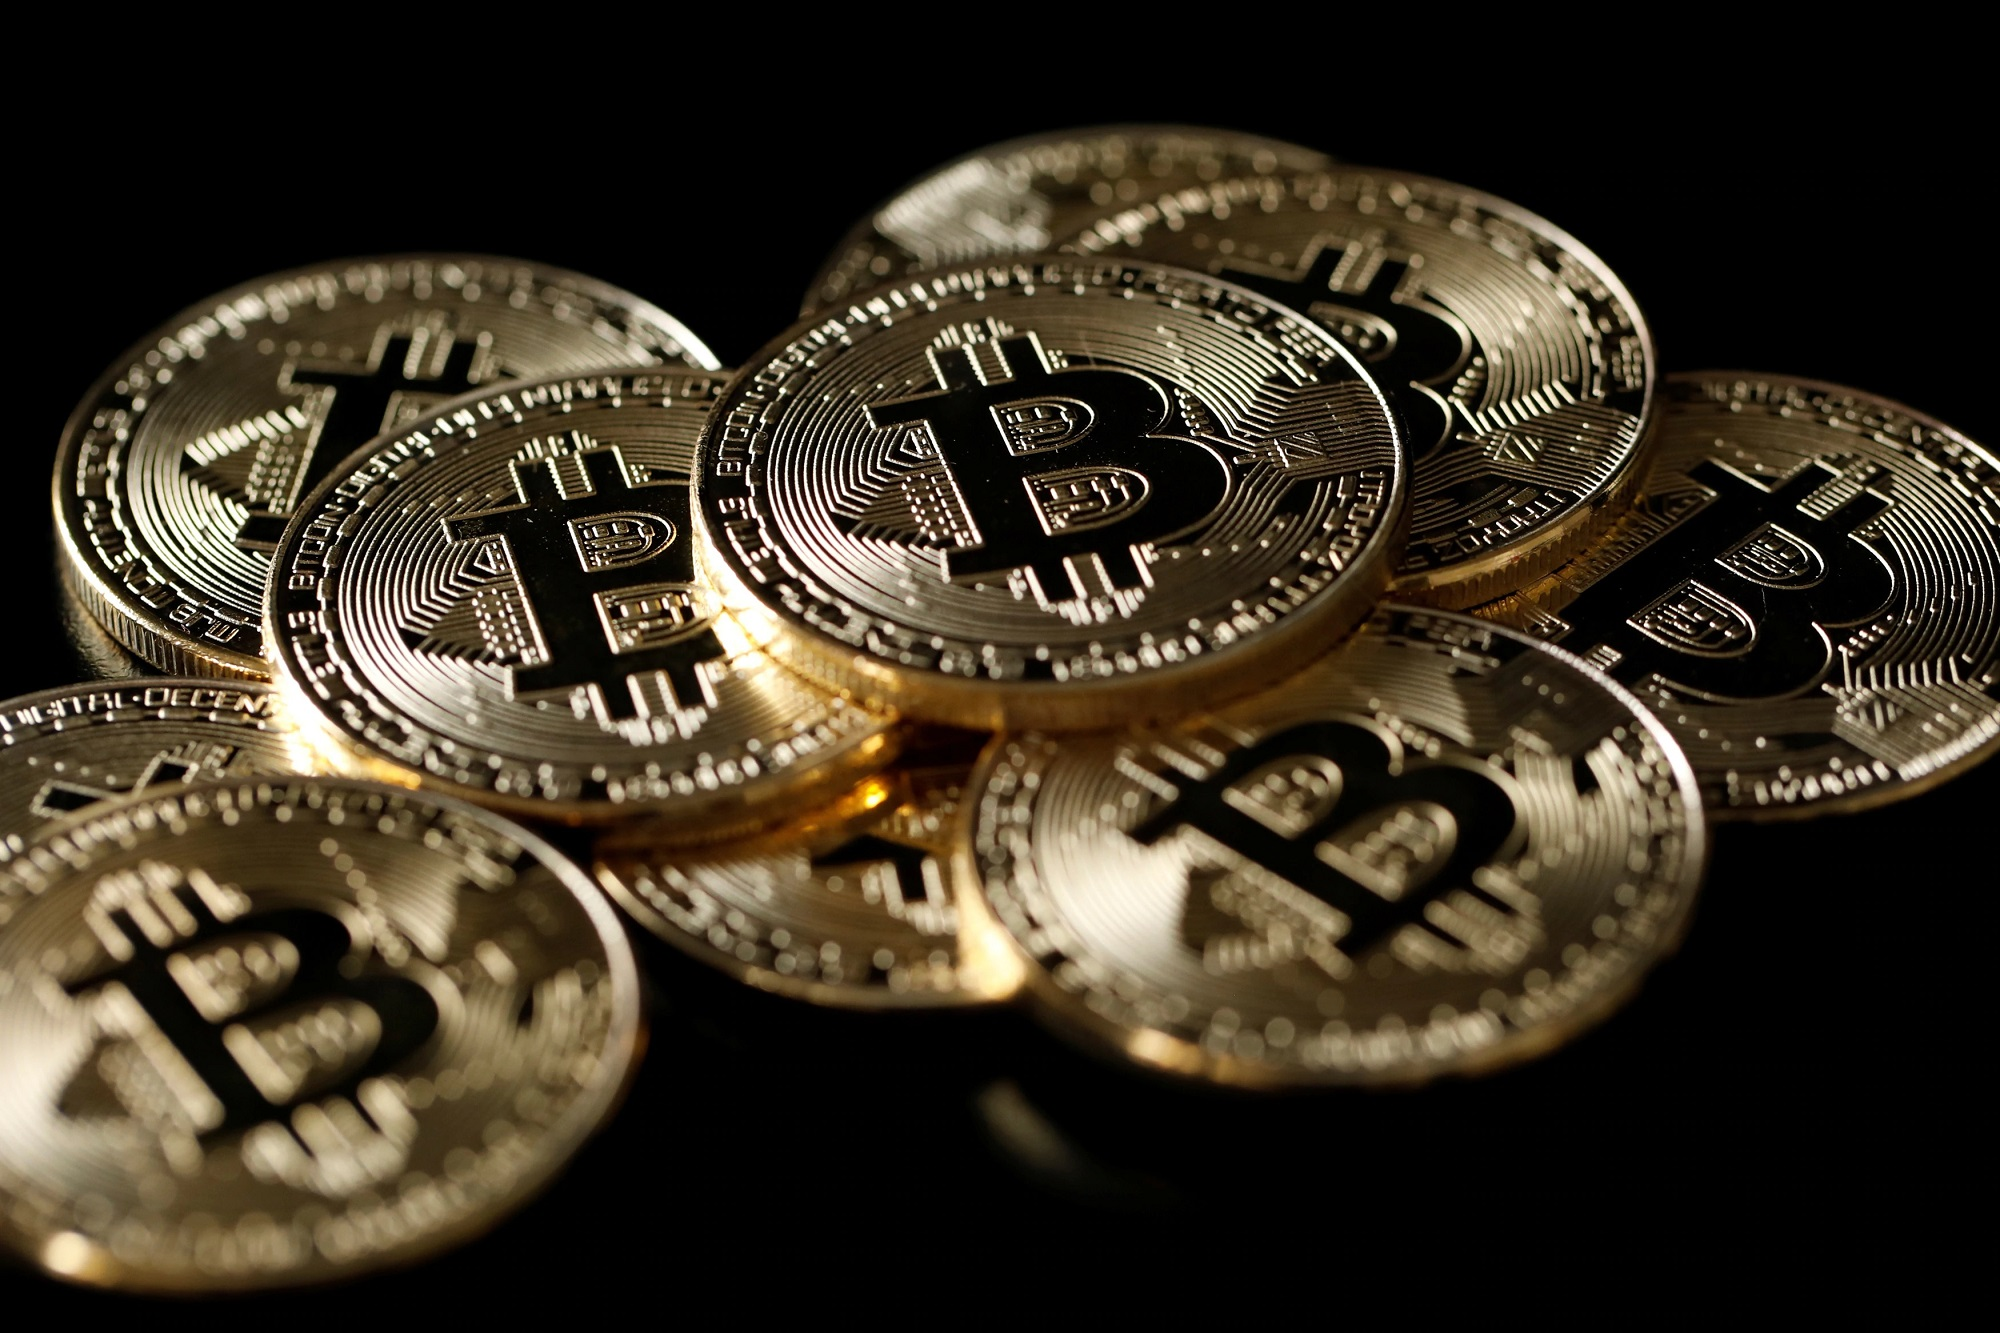 More about virtual currency